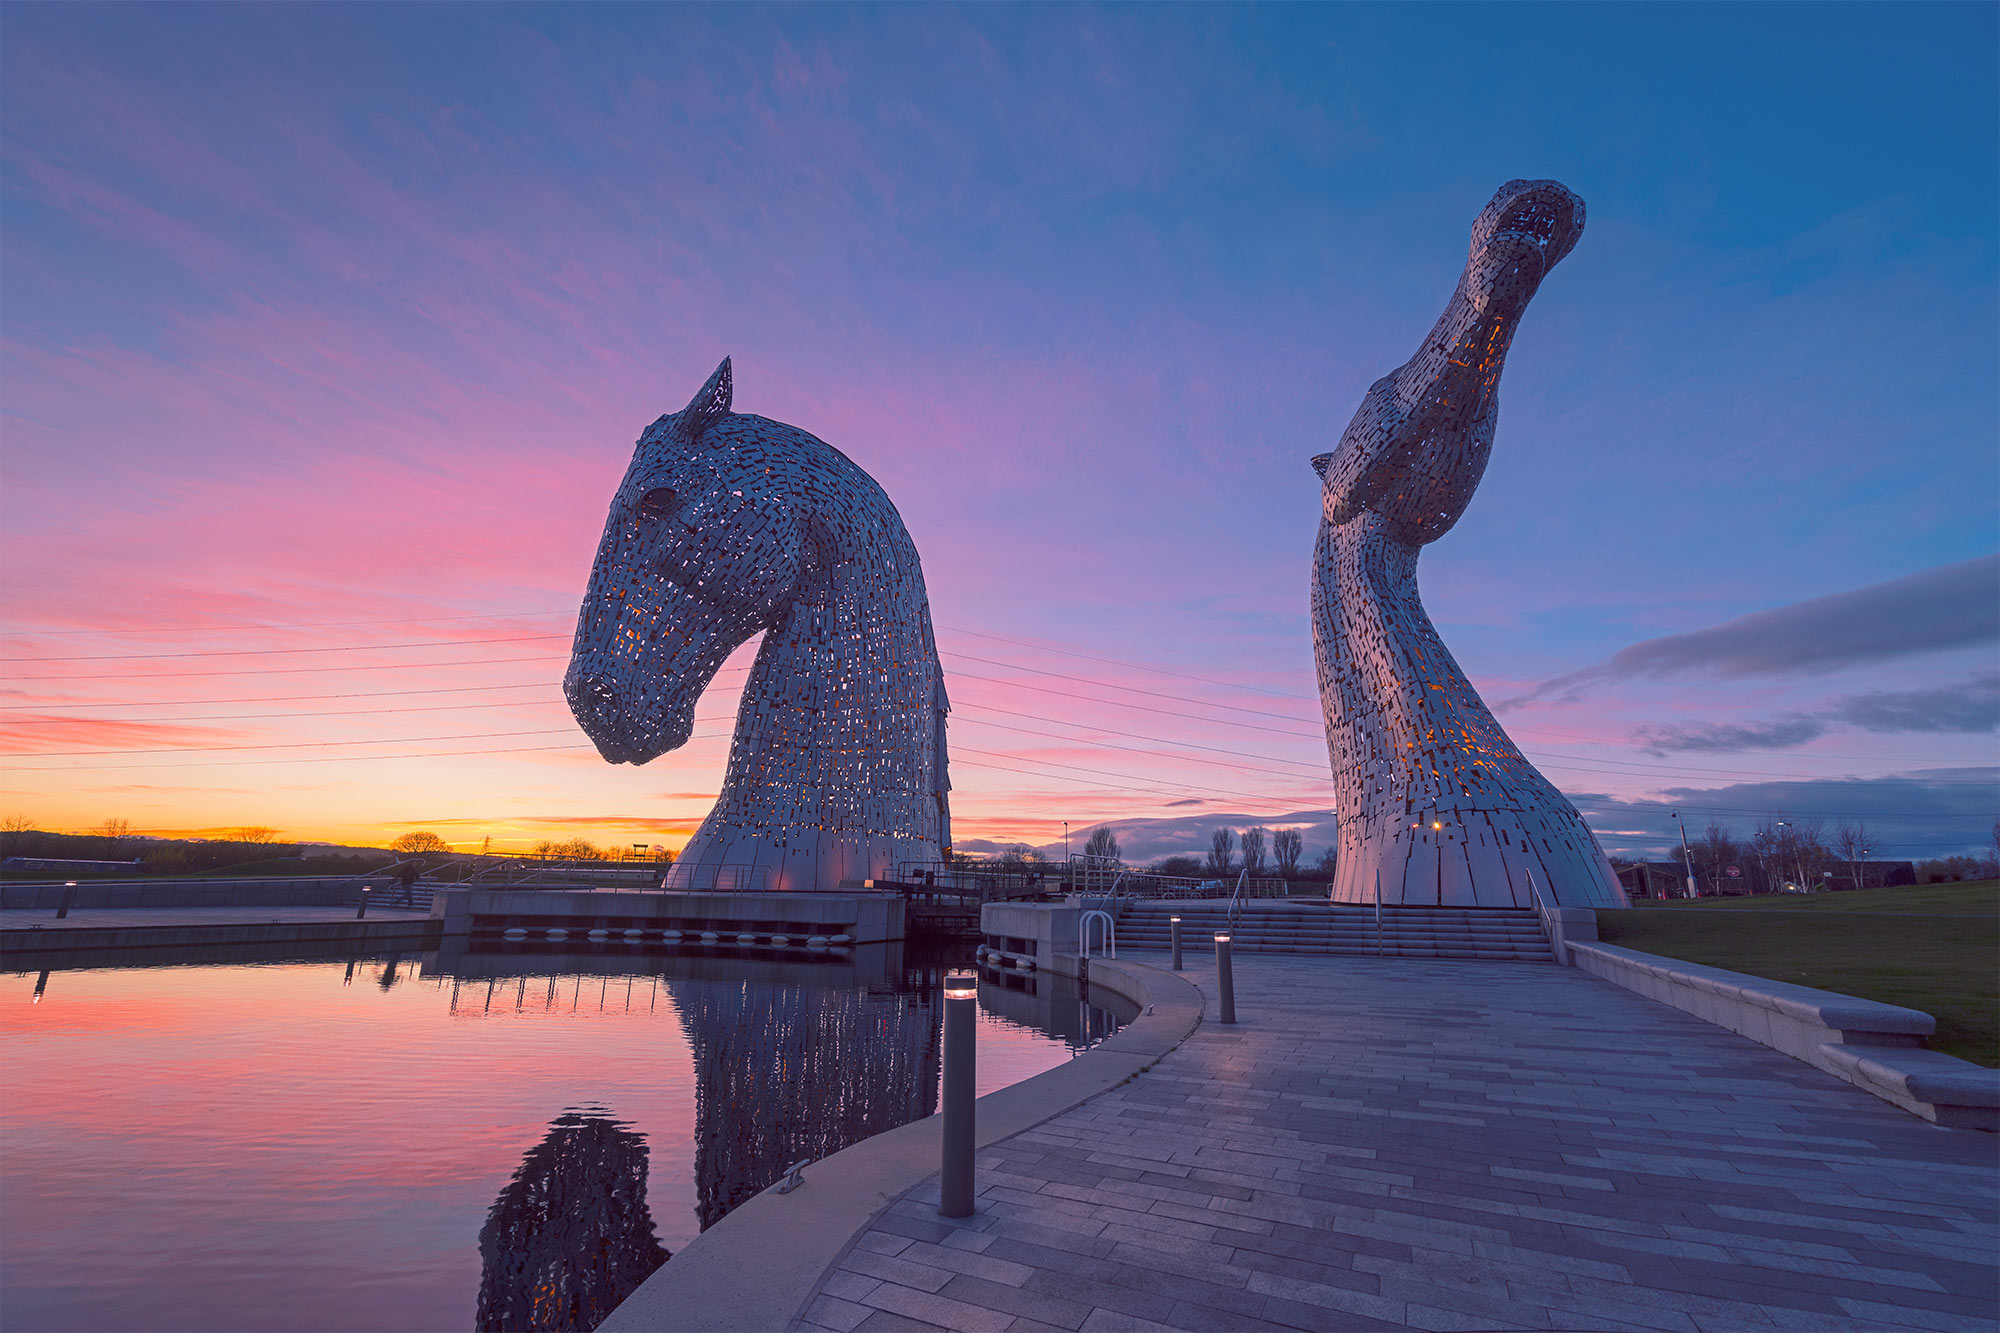 The Helix, Home of The Kelpies, Falkirk